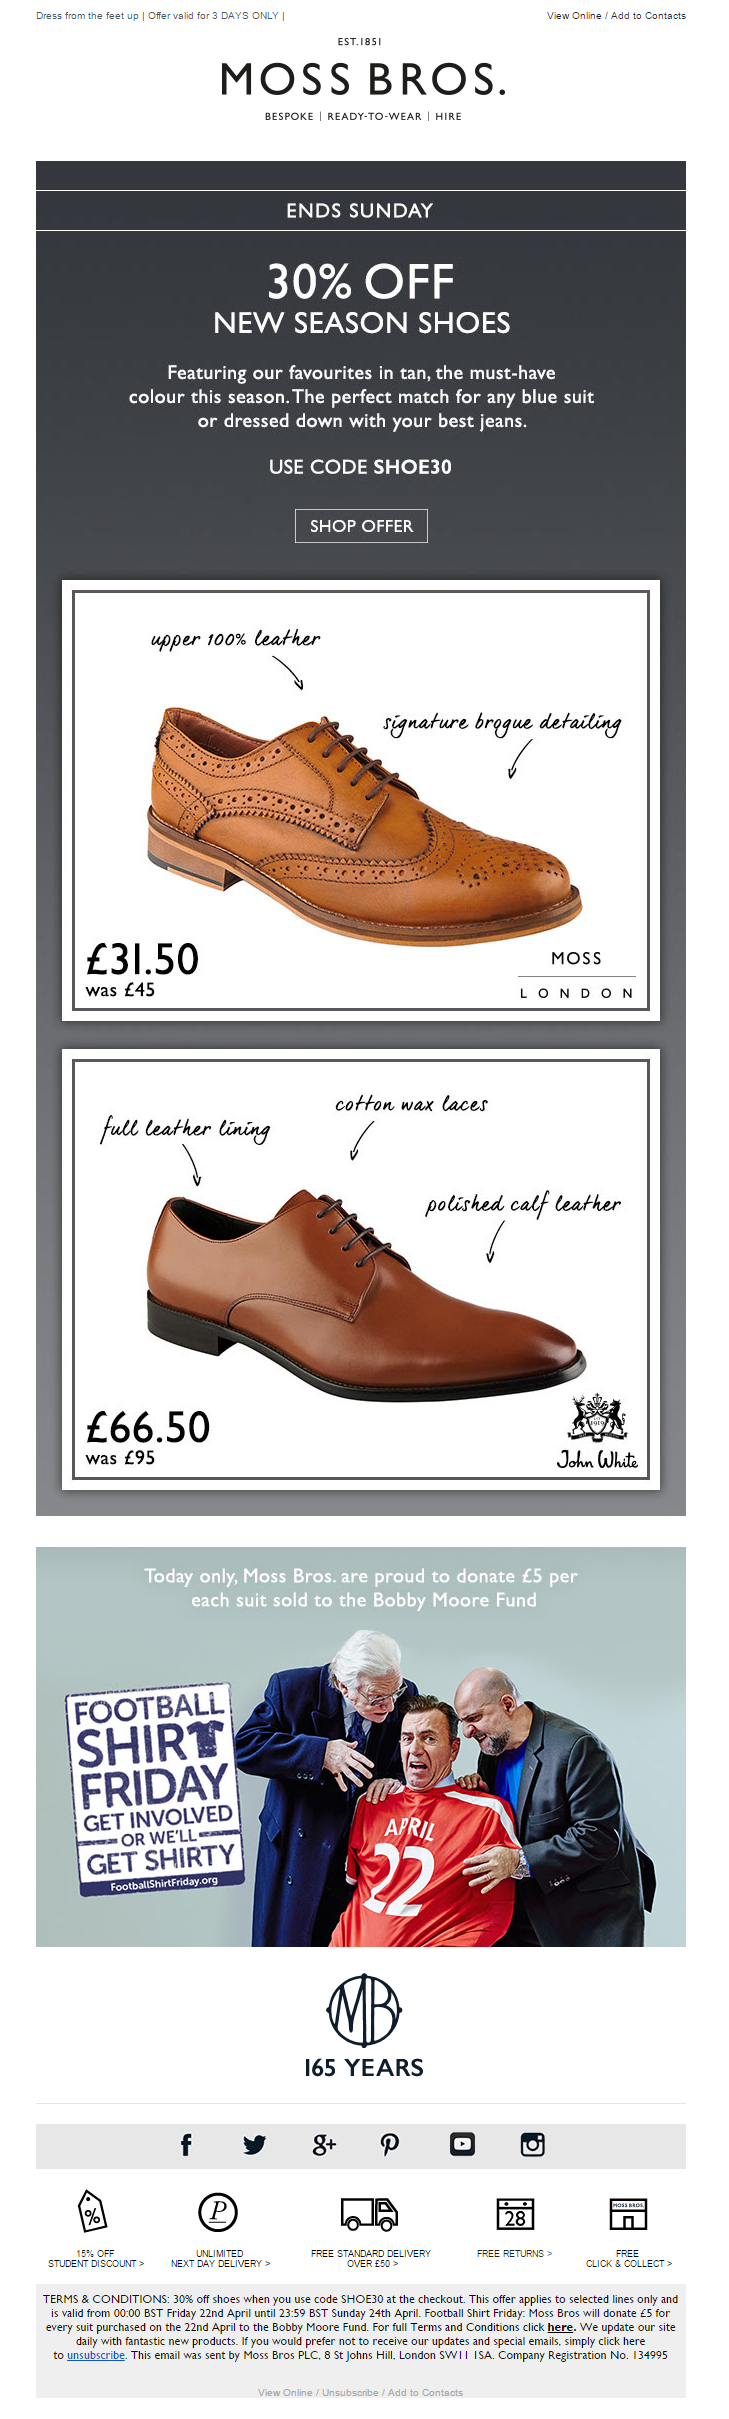 Floor mats uk voucher code - 30 Off New Season Shoes Coupon Code From Moss Bros Emailmarketing Email